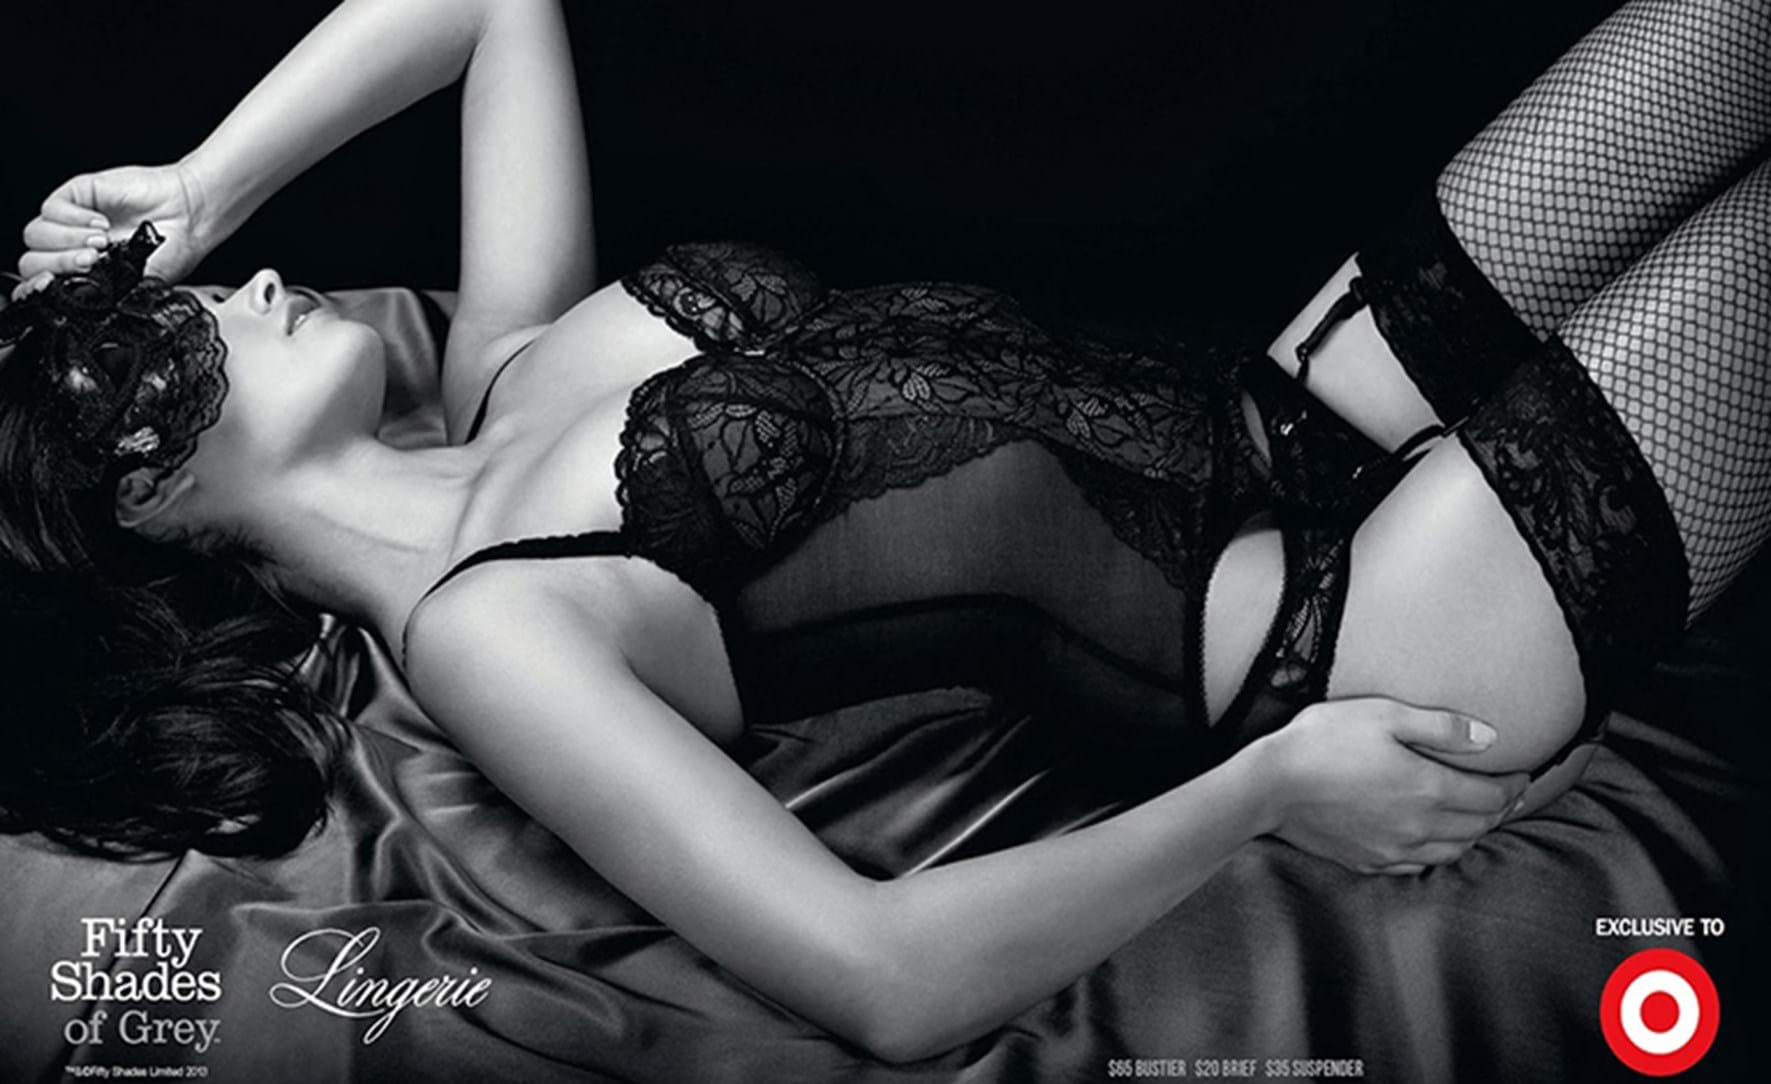 Lingerie - Fifty Shades of Grey